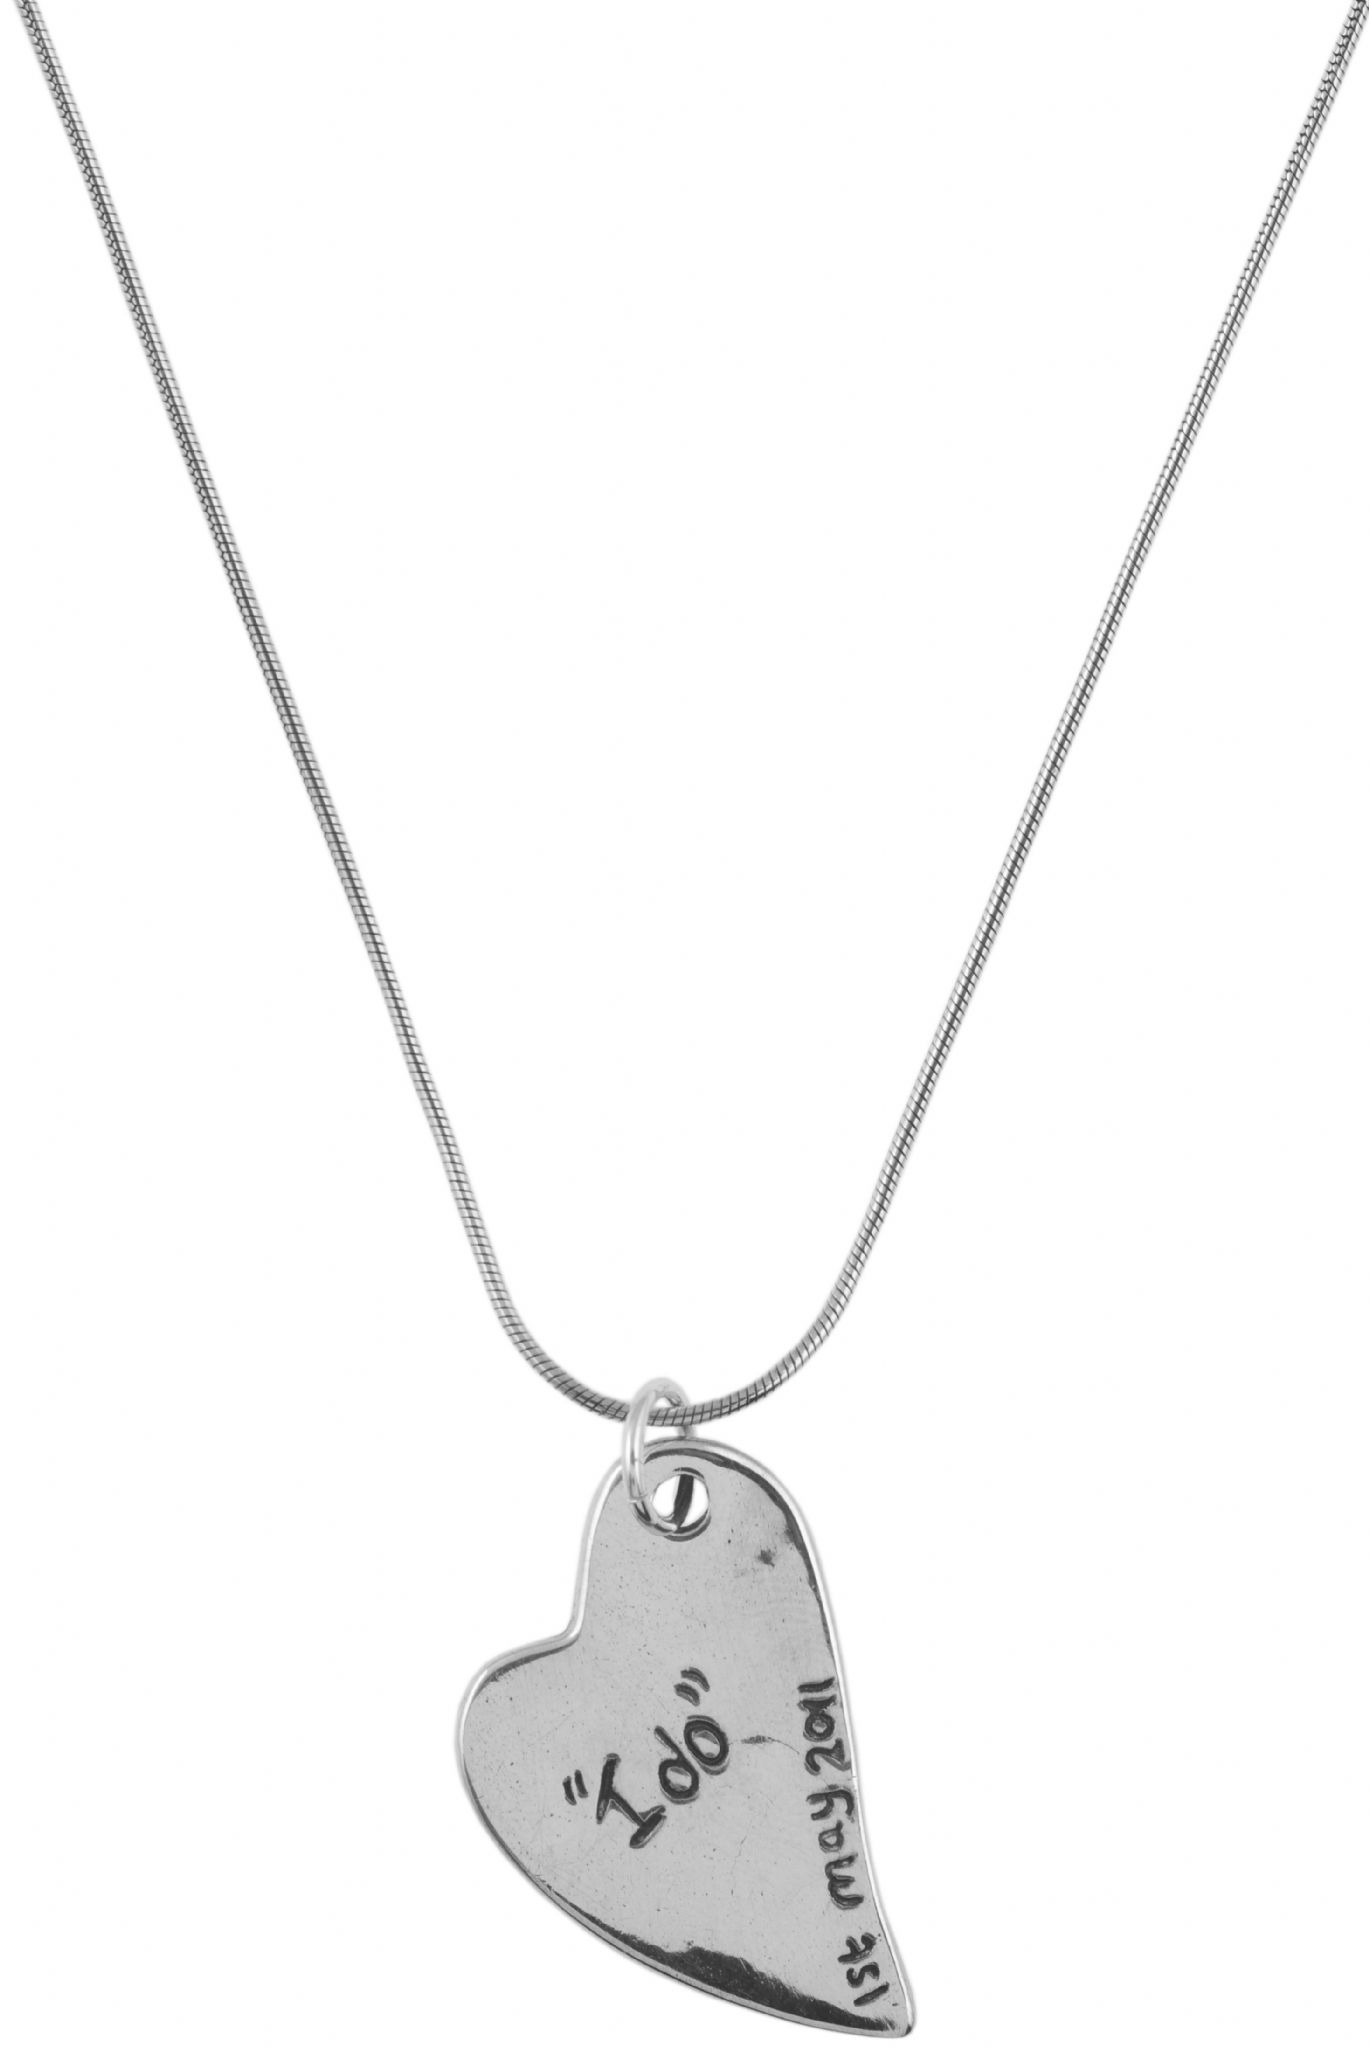 necklaces memorial metals pendant fingerprint products necklace high gift maven ideas quality